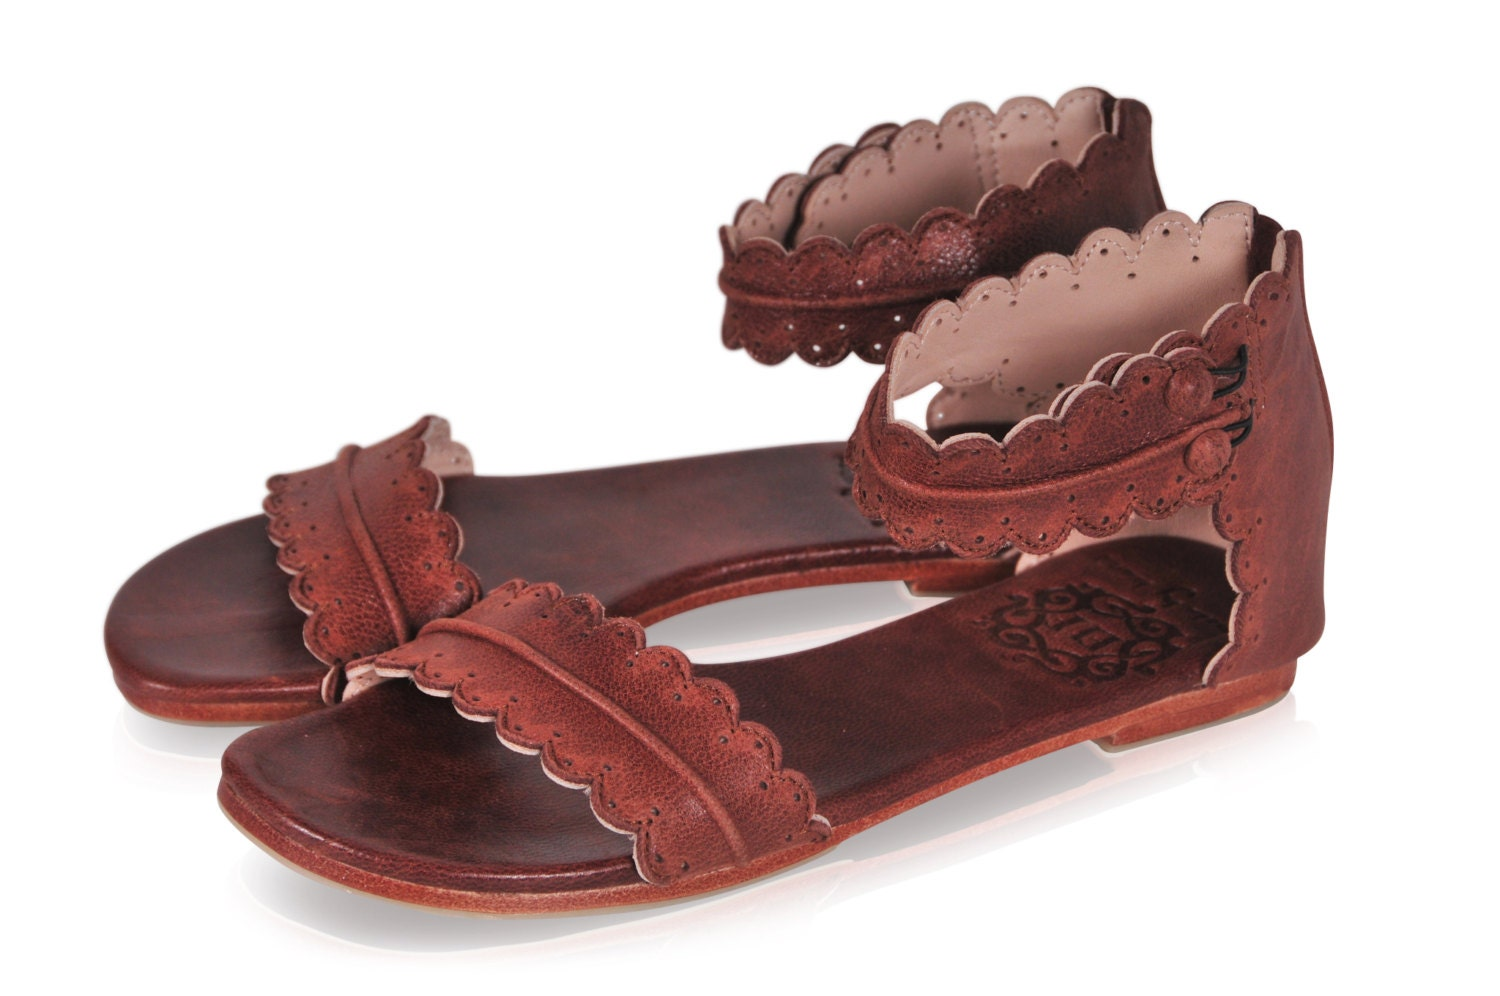 Midsummer Brown Leather Sandals Women Shoes Leather Shoes